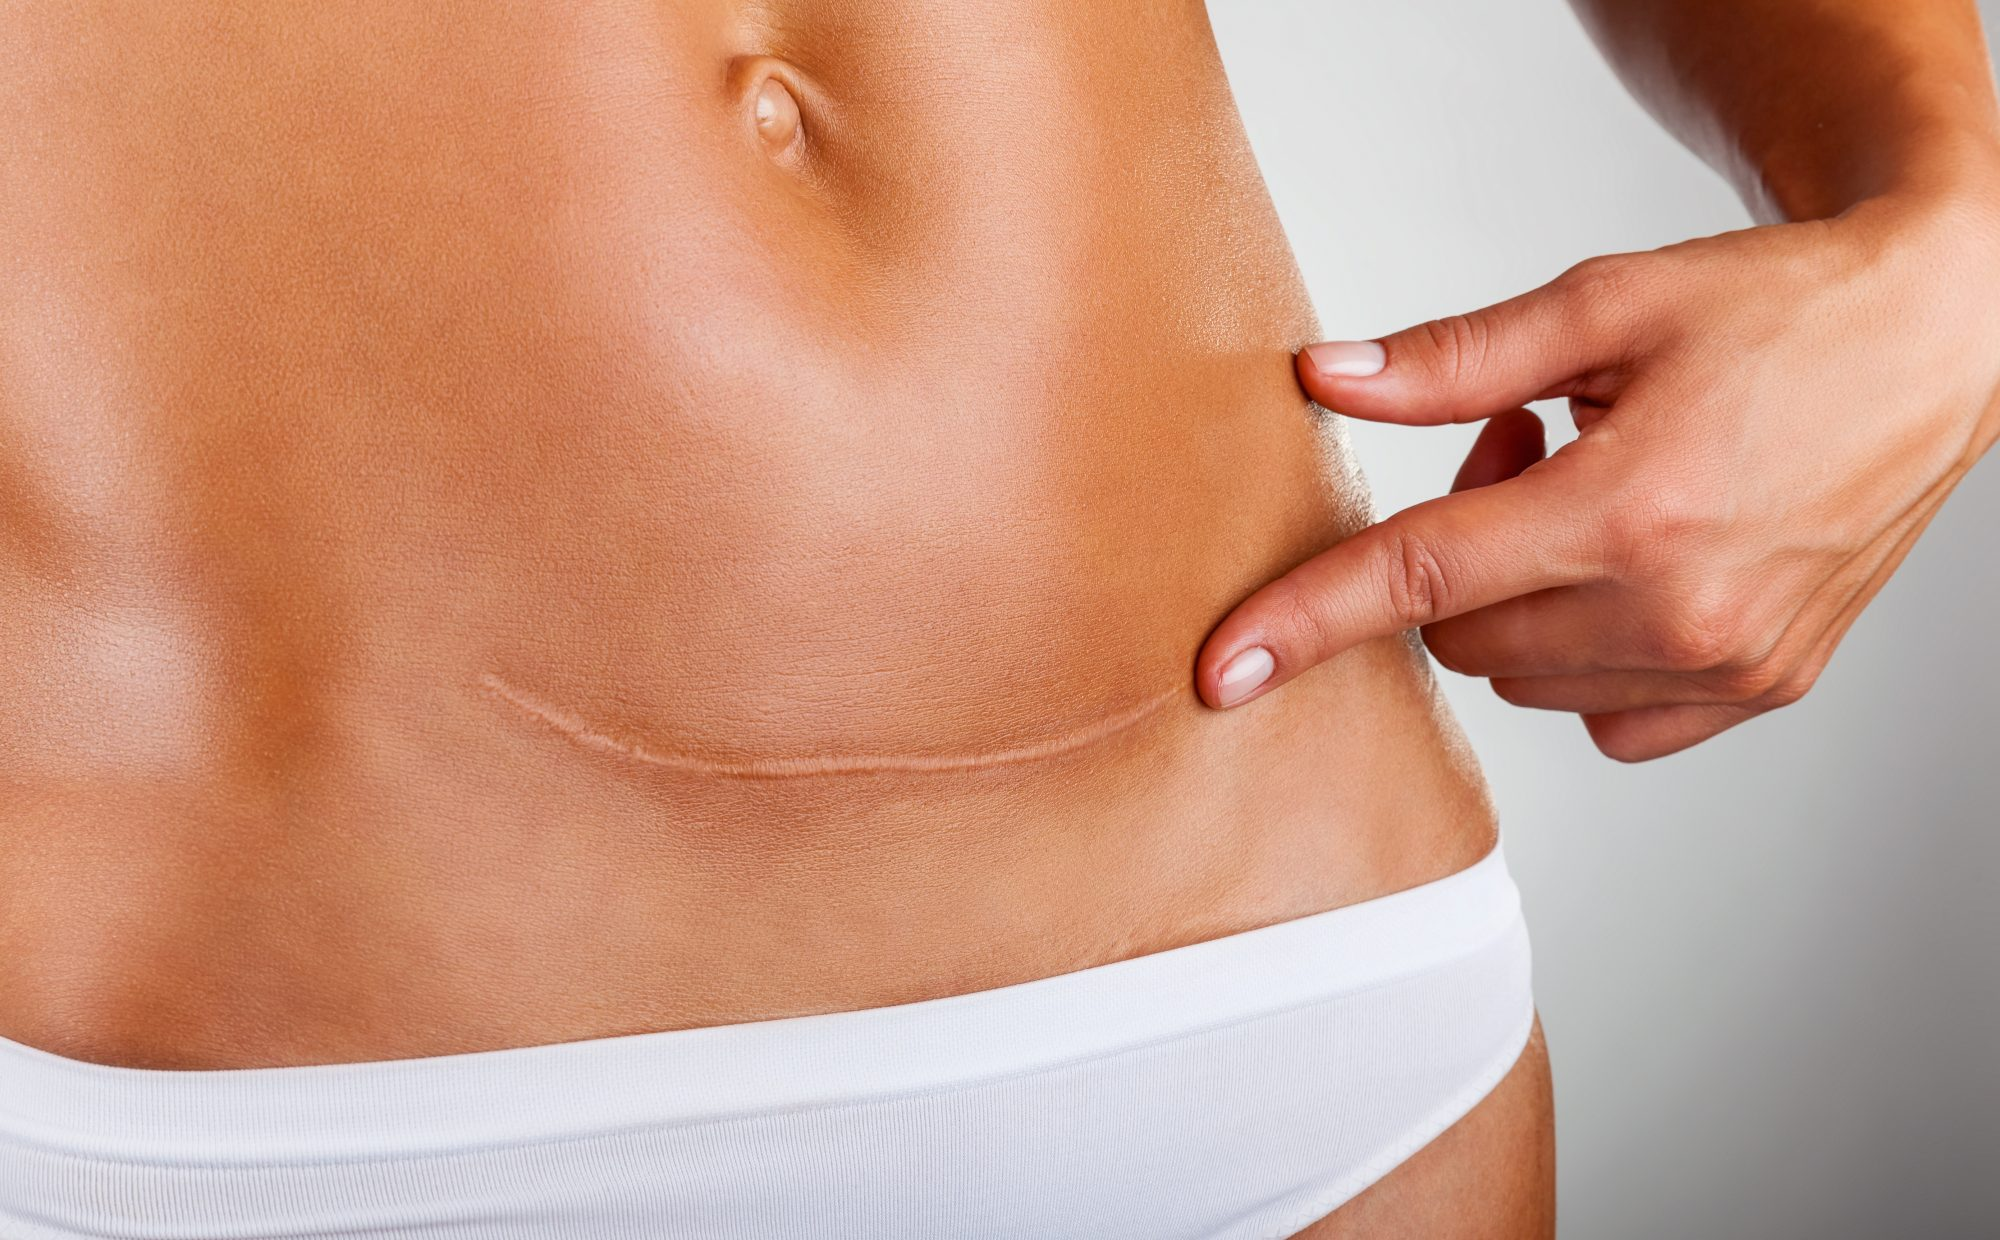 c-section-scar-stomach